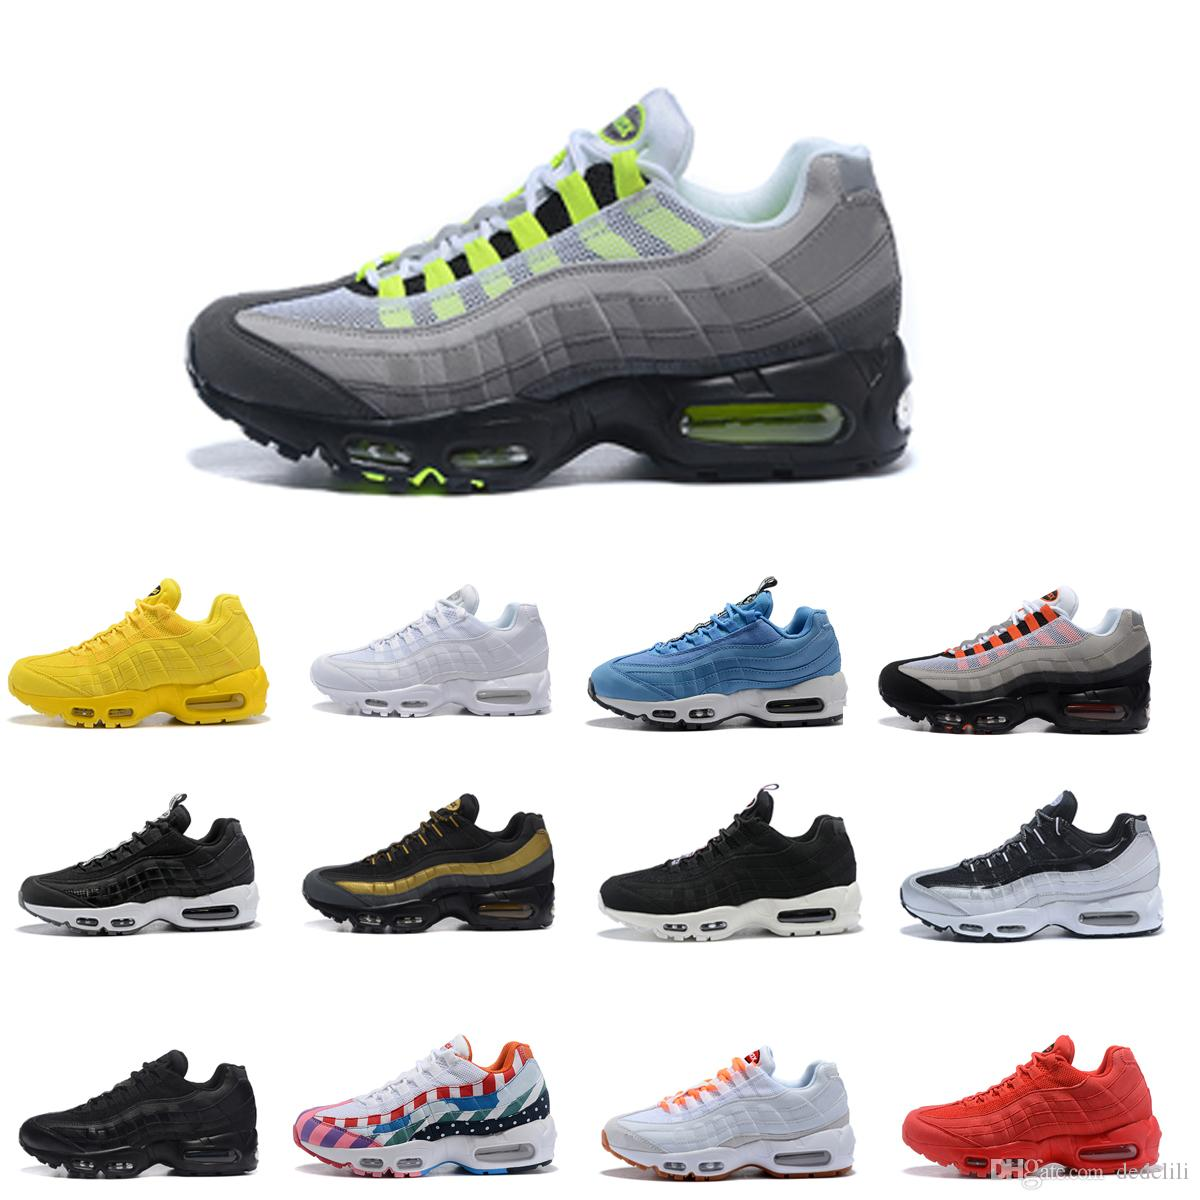 new styles 4de86 63c29 Acquista Nike Air Max 95 Airmax 95 Men Retro 95 OG Cushion Navy Sport Di  Alta Qualità Chaussure 95s Walking Boots Men Running Shoes Cushion 95  Sneakers ...